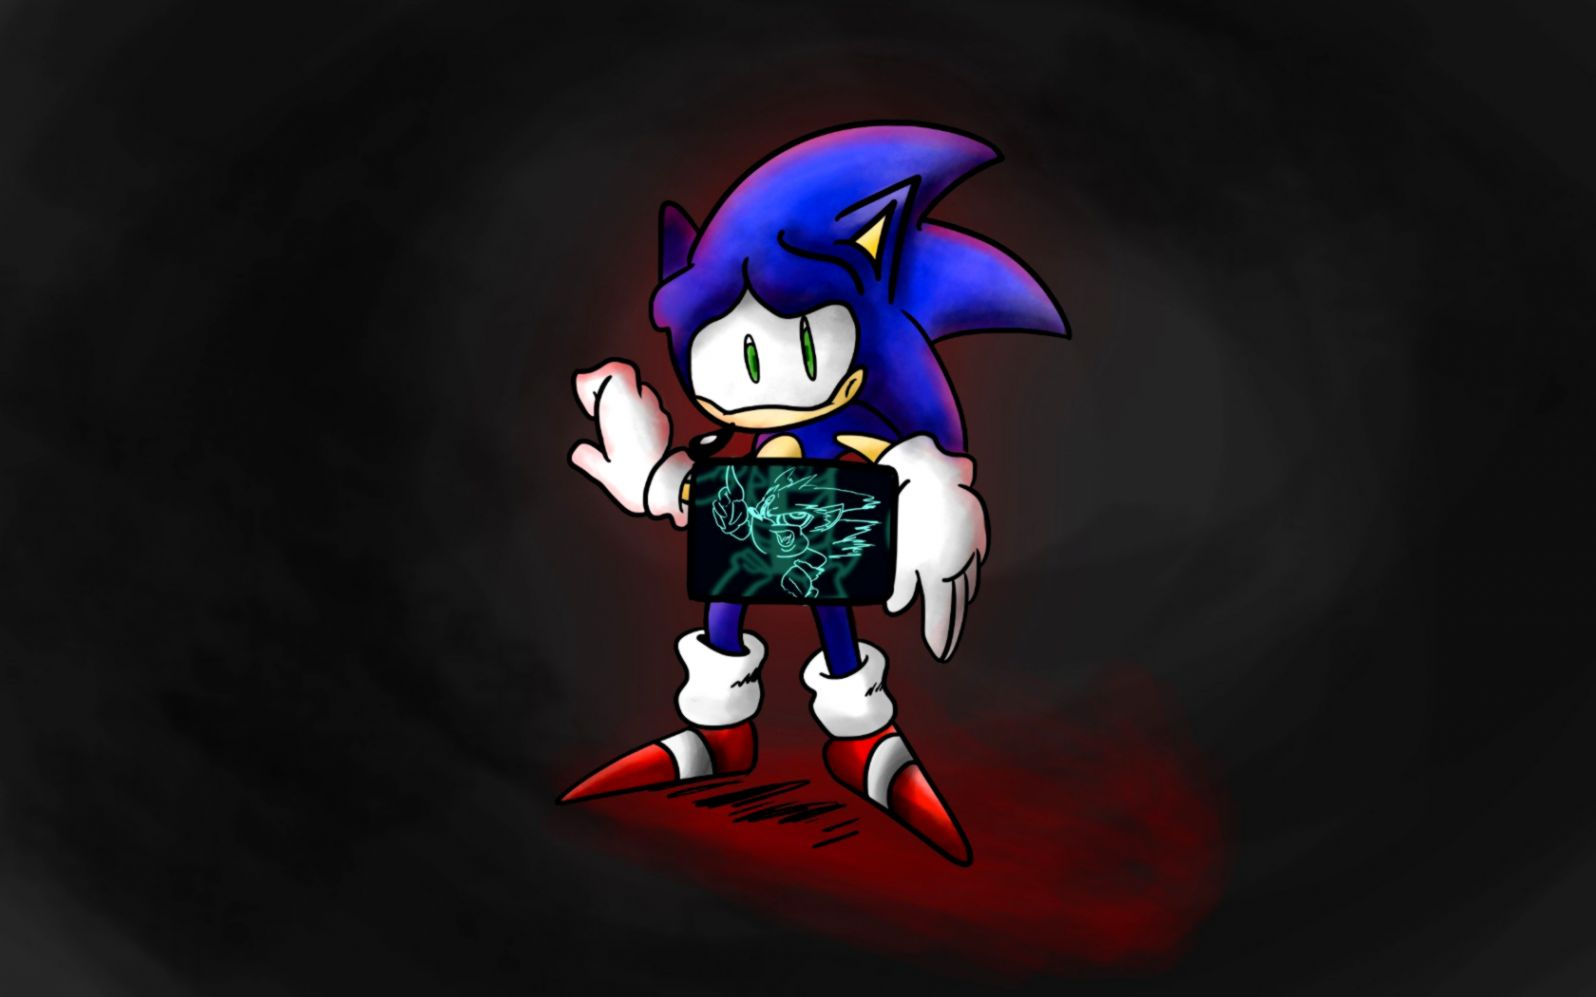 Sonic The Hedgehog Wallpaper And Background Image Id Sonic Desktop Backgrounds 1596x997 Wallpaper Teahub Io